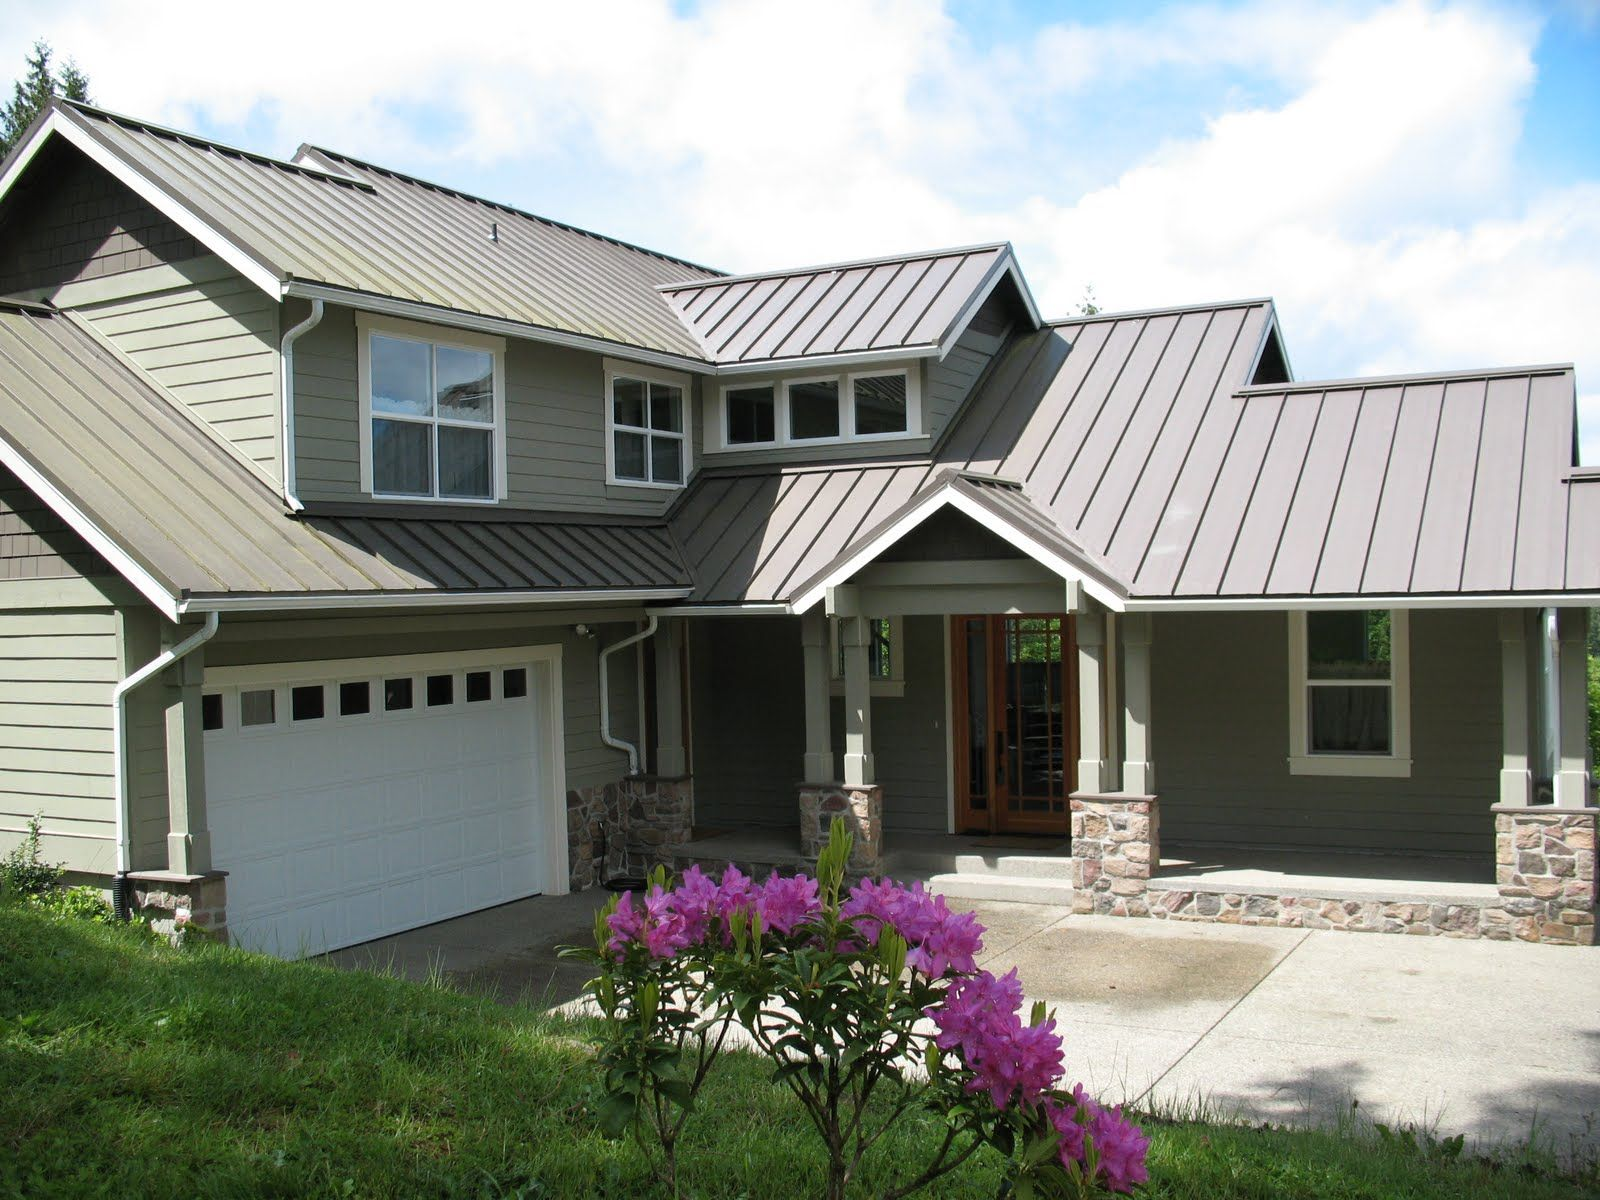 Best Grey Metal Roof With Green Painted House Looks Nice 640 x 480